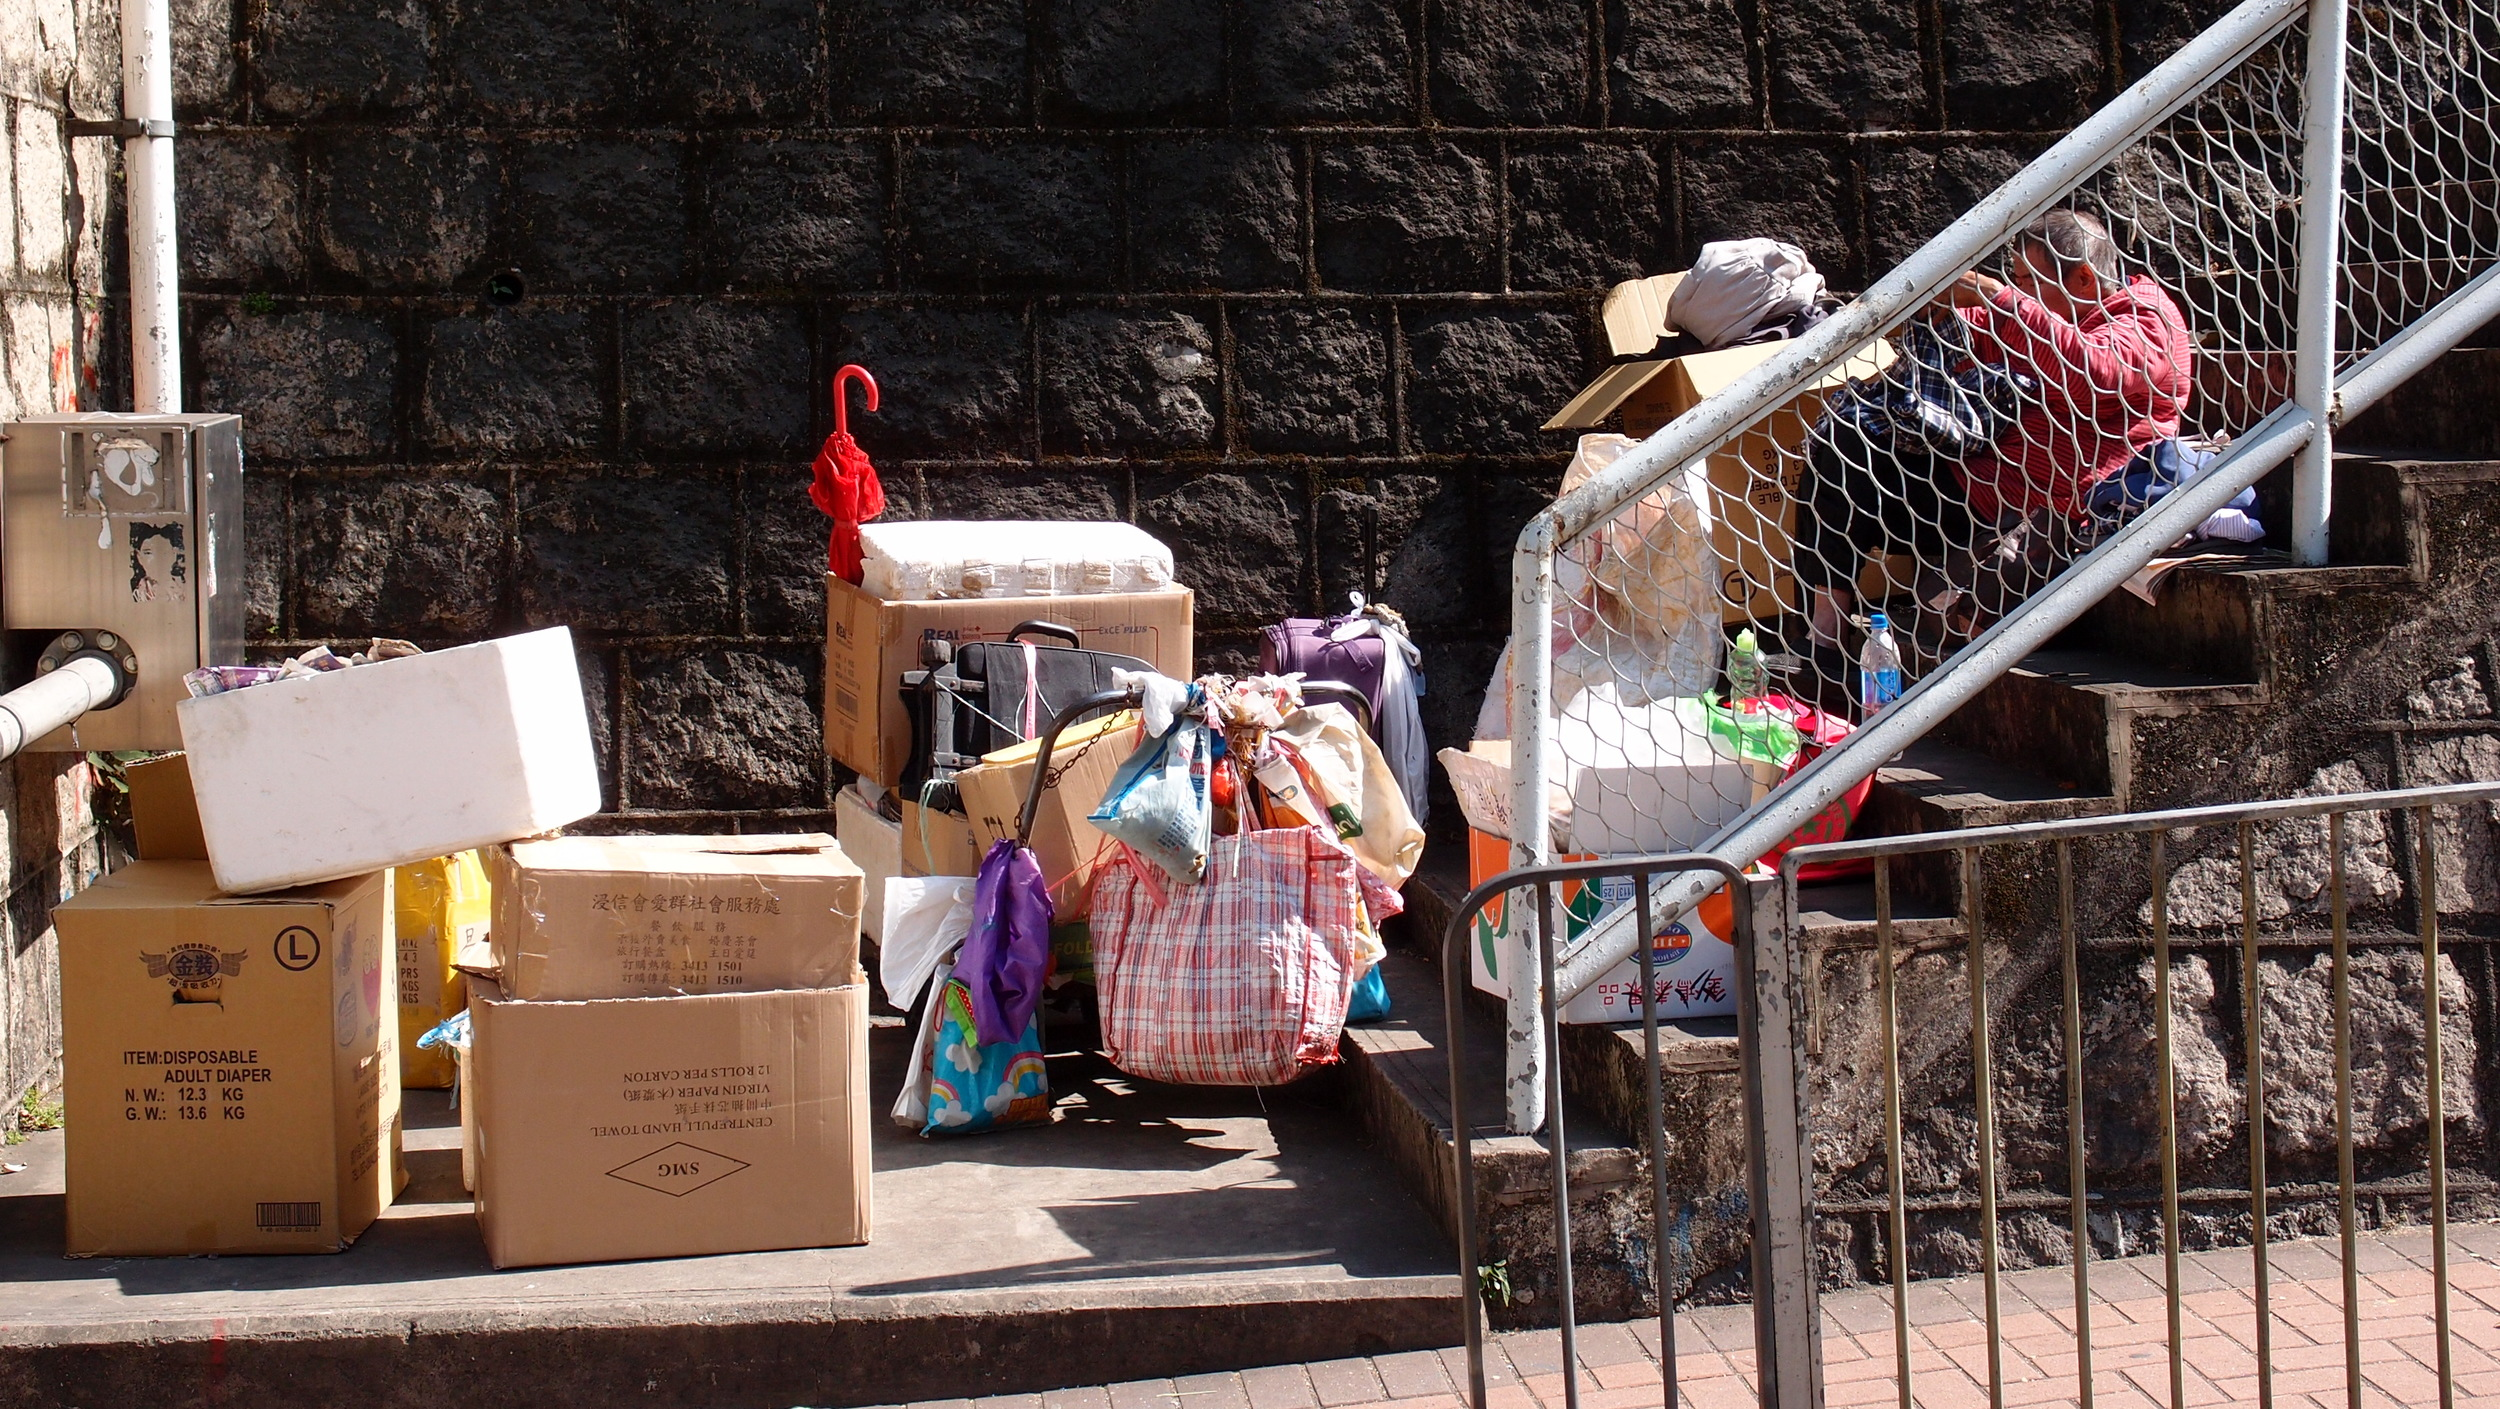 A homeless person with all his worldly possessions